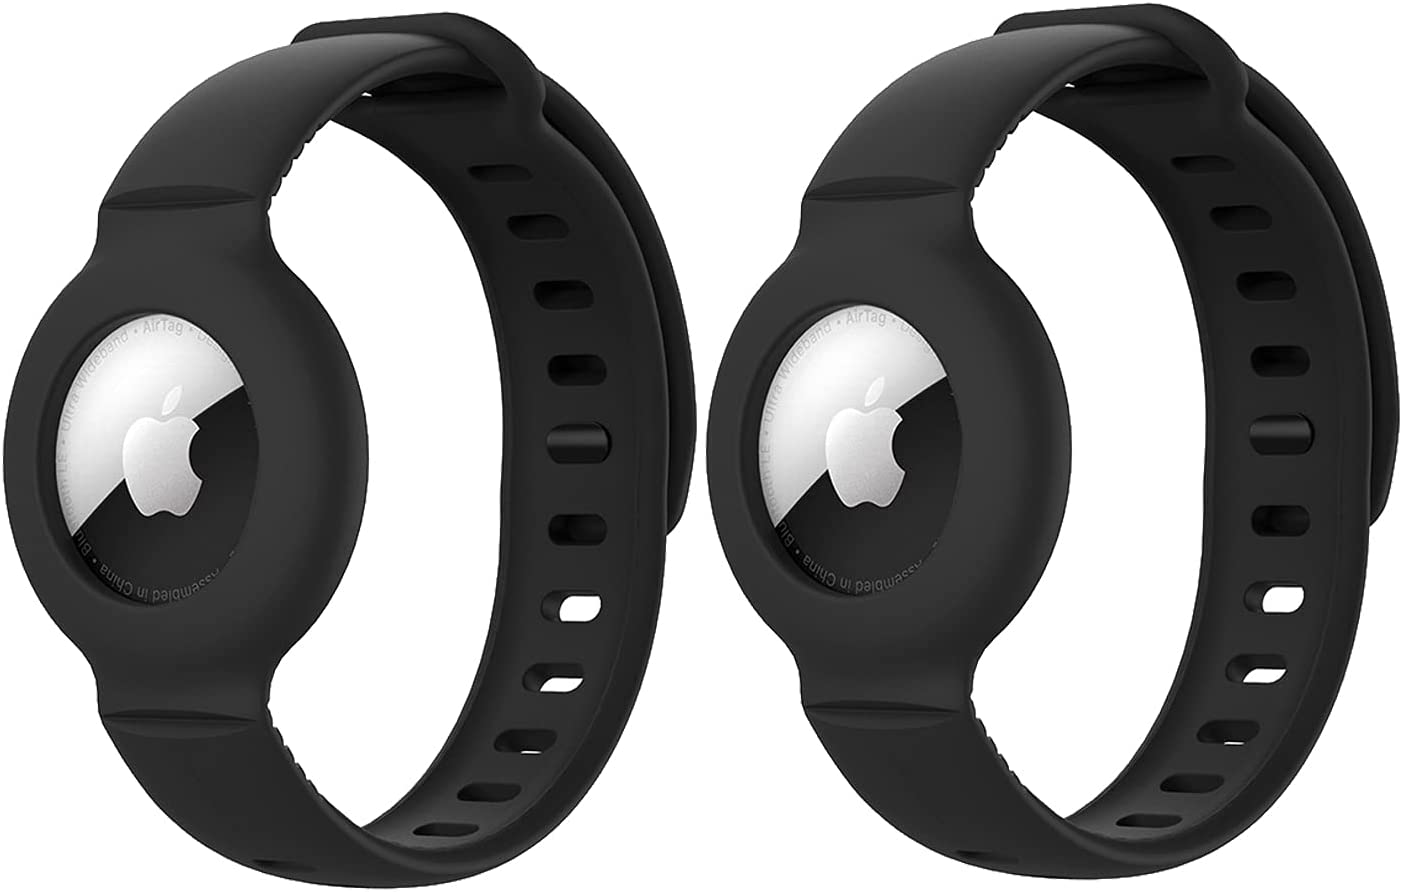 (2 Pack) Kids/Adults Anti-Lost Bracelet for AirTag, iZi Way Soft Silicone Wristband Watch Band Protective Case Cover Holder for Apple Air Tag Tracker - Black